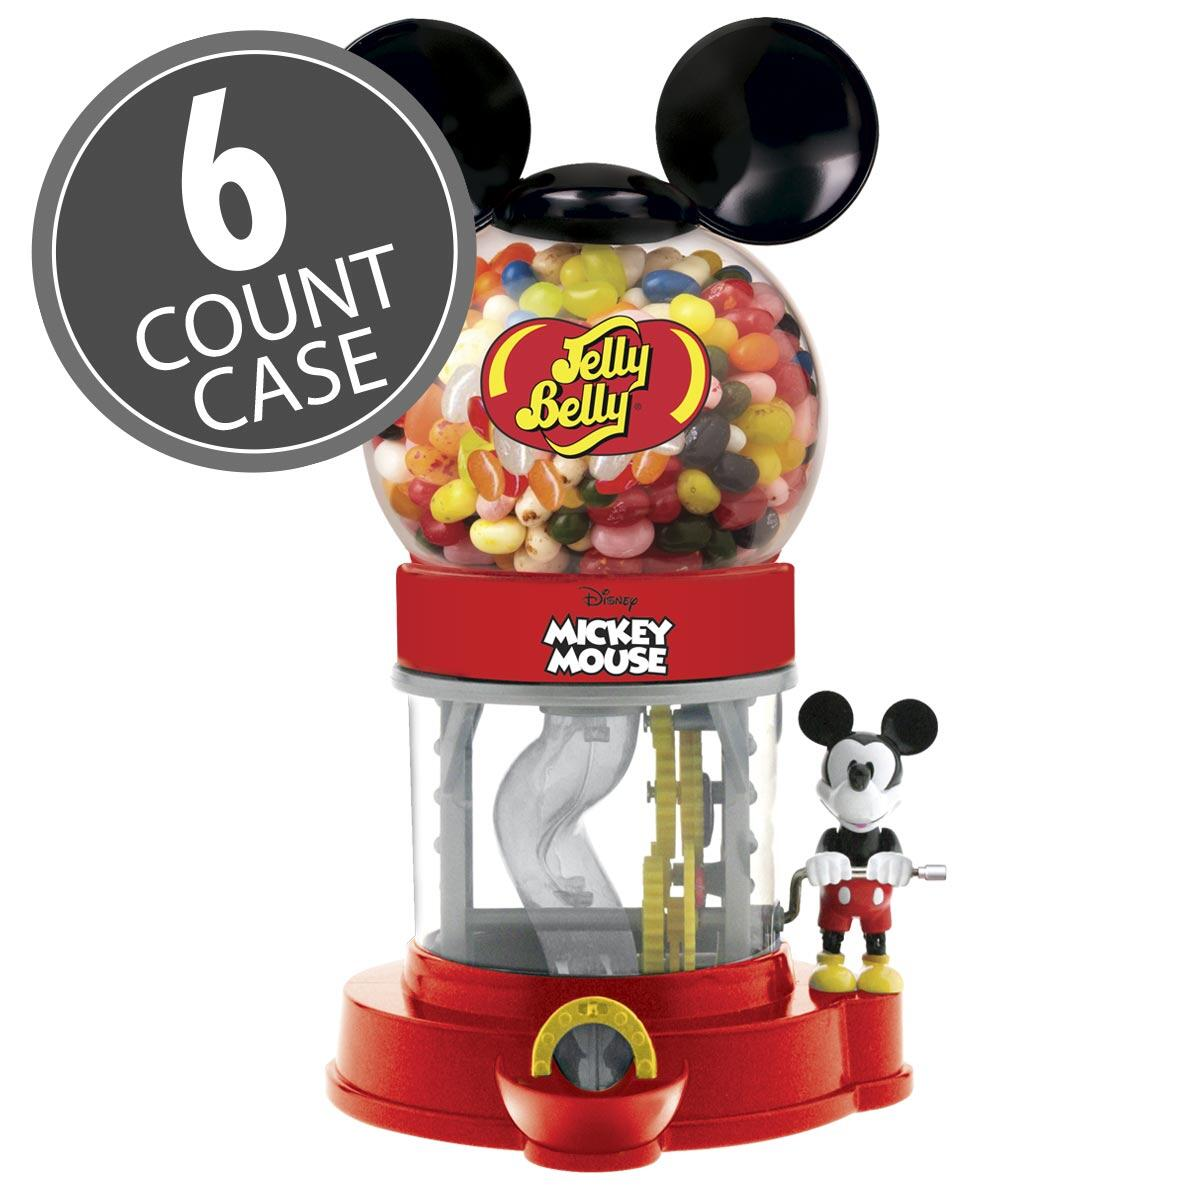 Disney© Mickey Mouse Bean Machine - 6 Count Case